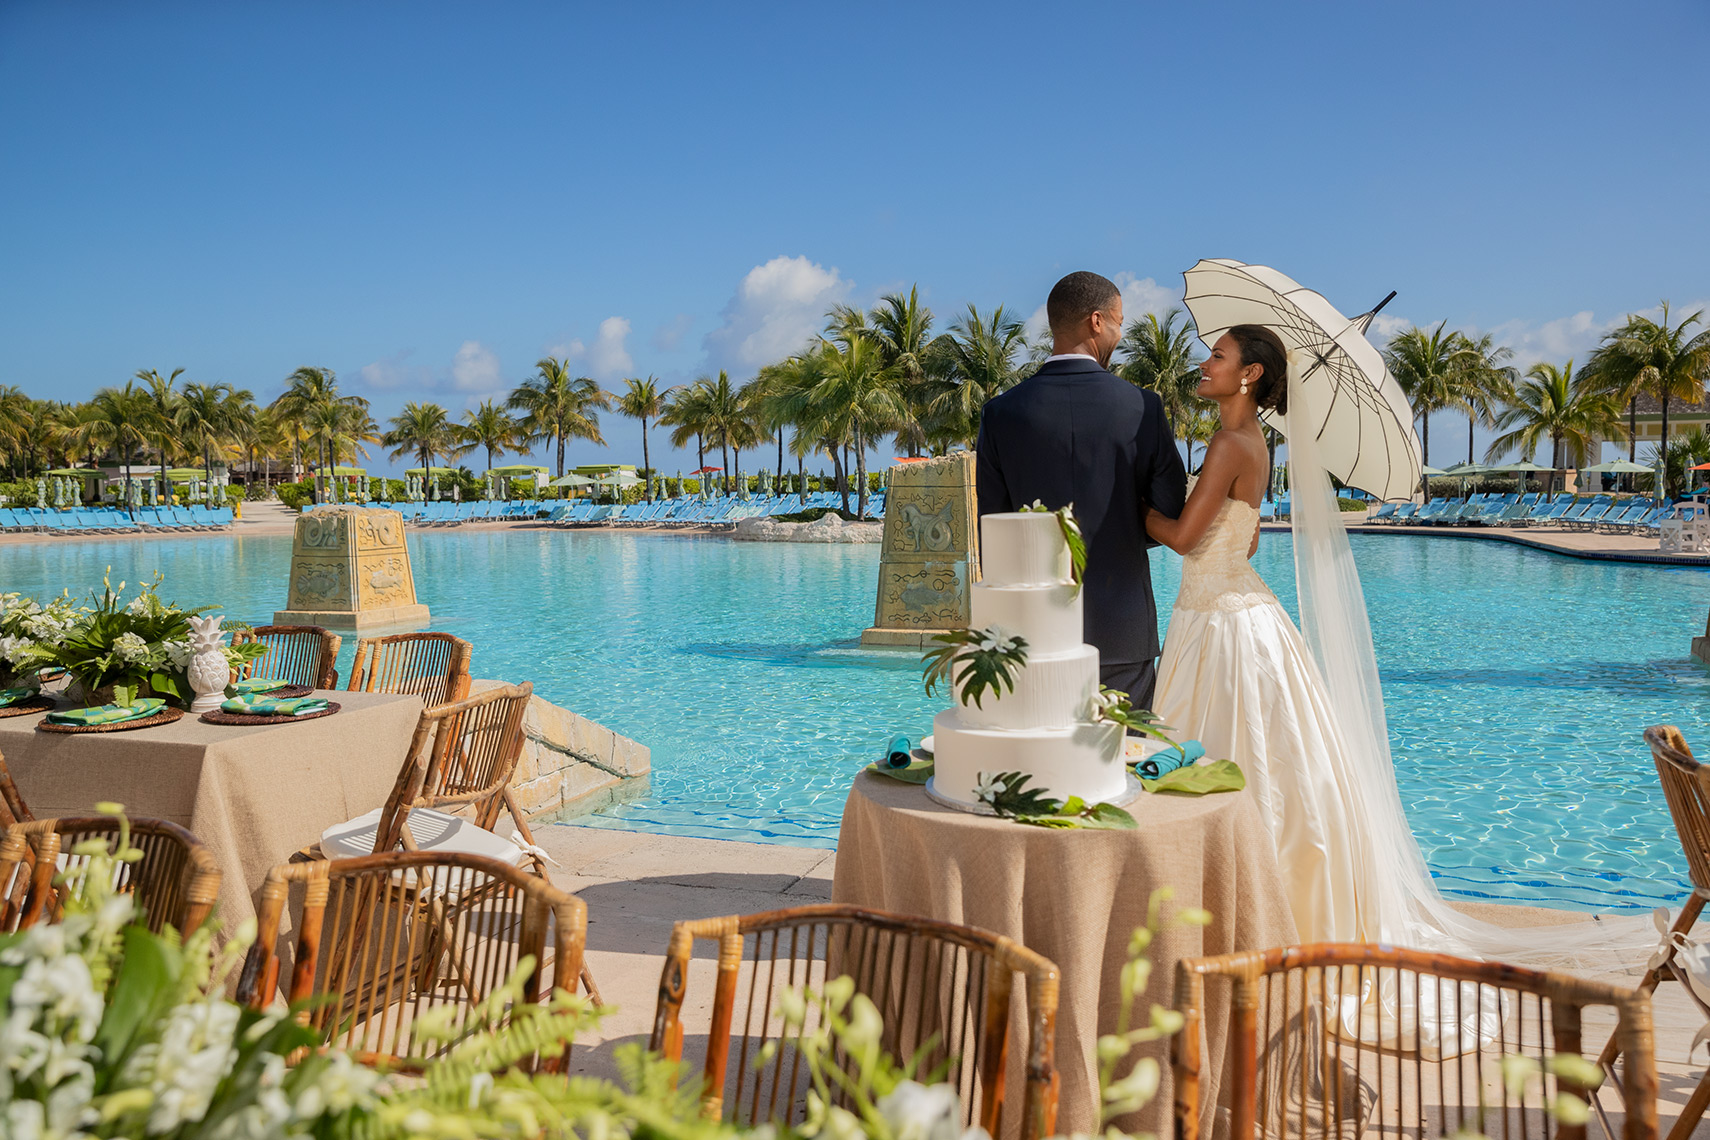 wedding reception with tropical decor at Atlantis Paradise Island destination wedding ideas in the bahamas